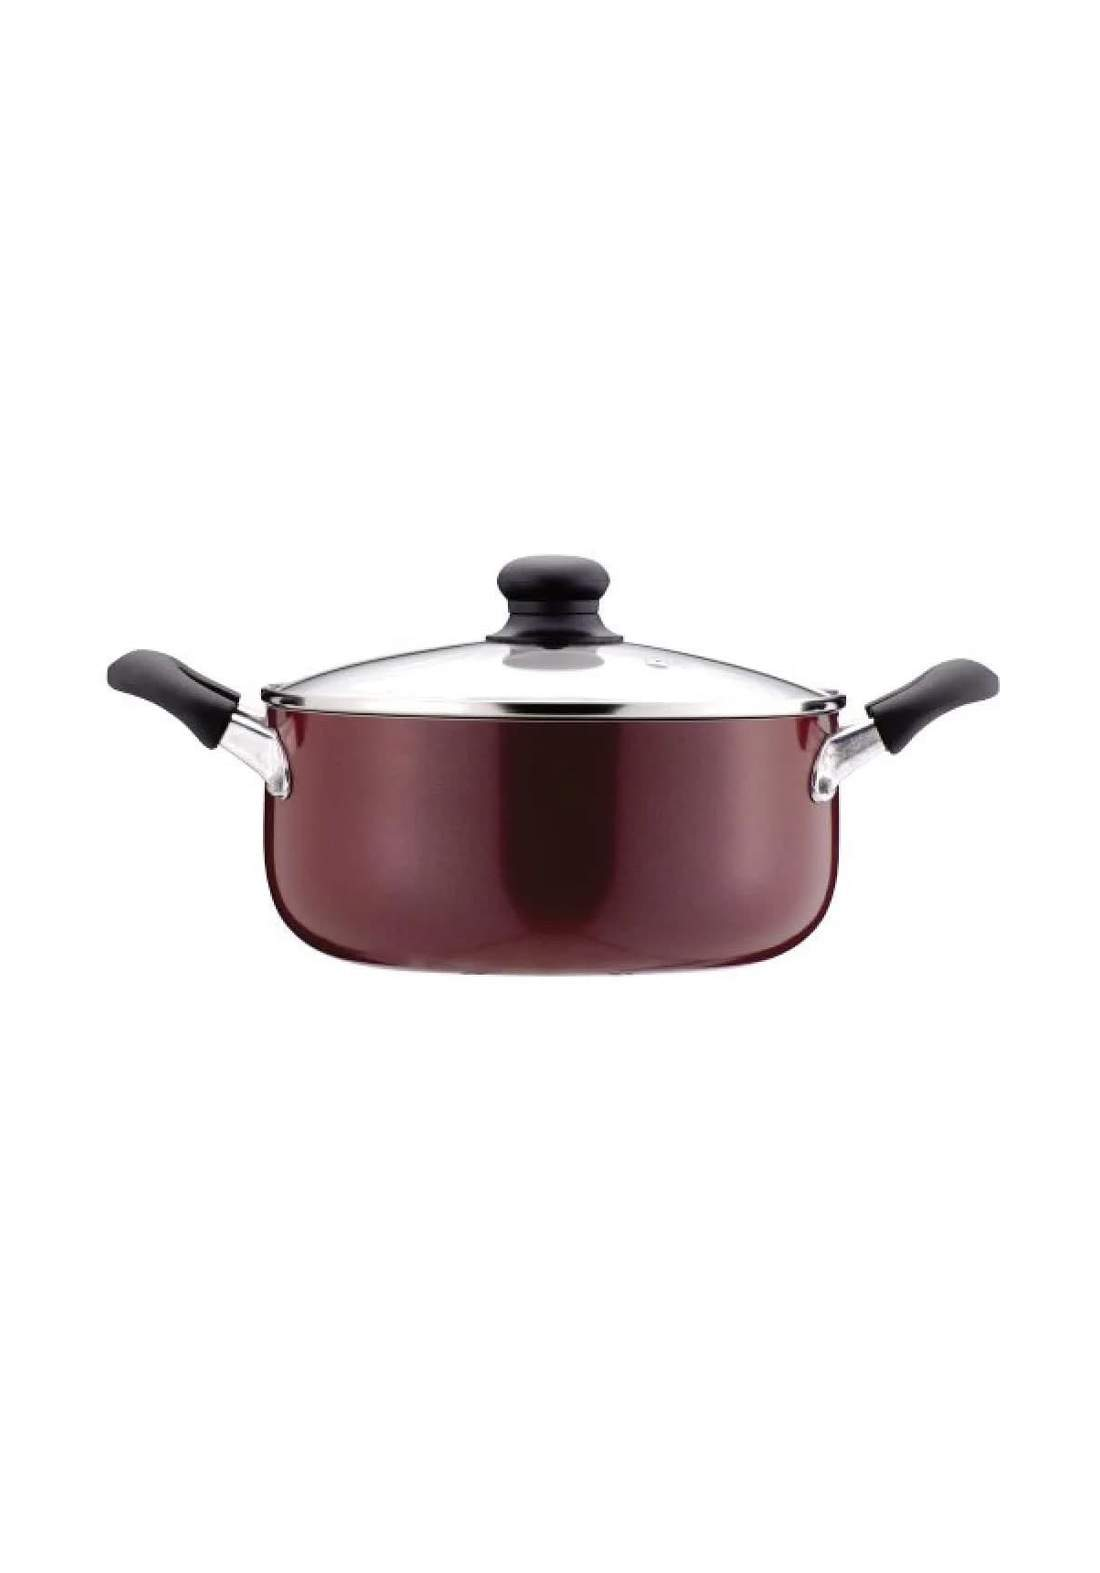 Pearl Metal H-2095  Both hands stewed pot 24cm with glass pot  قدر طعام